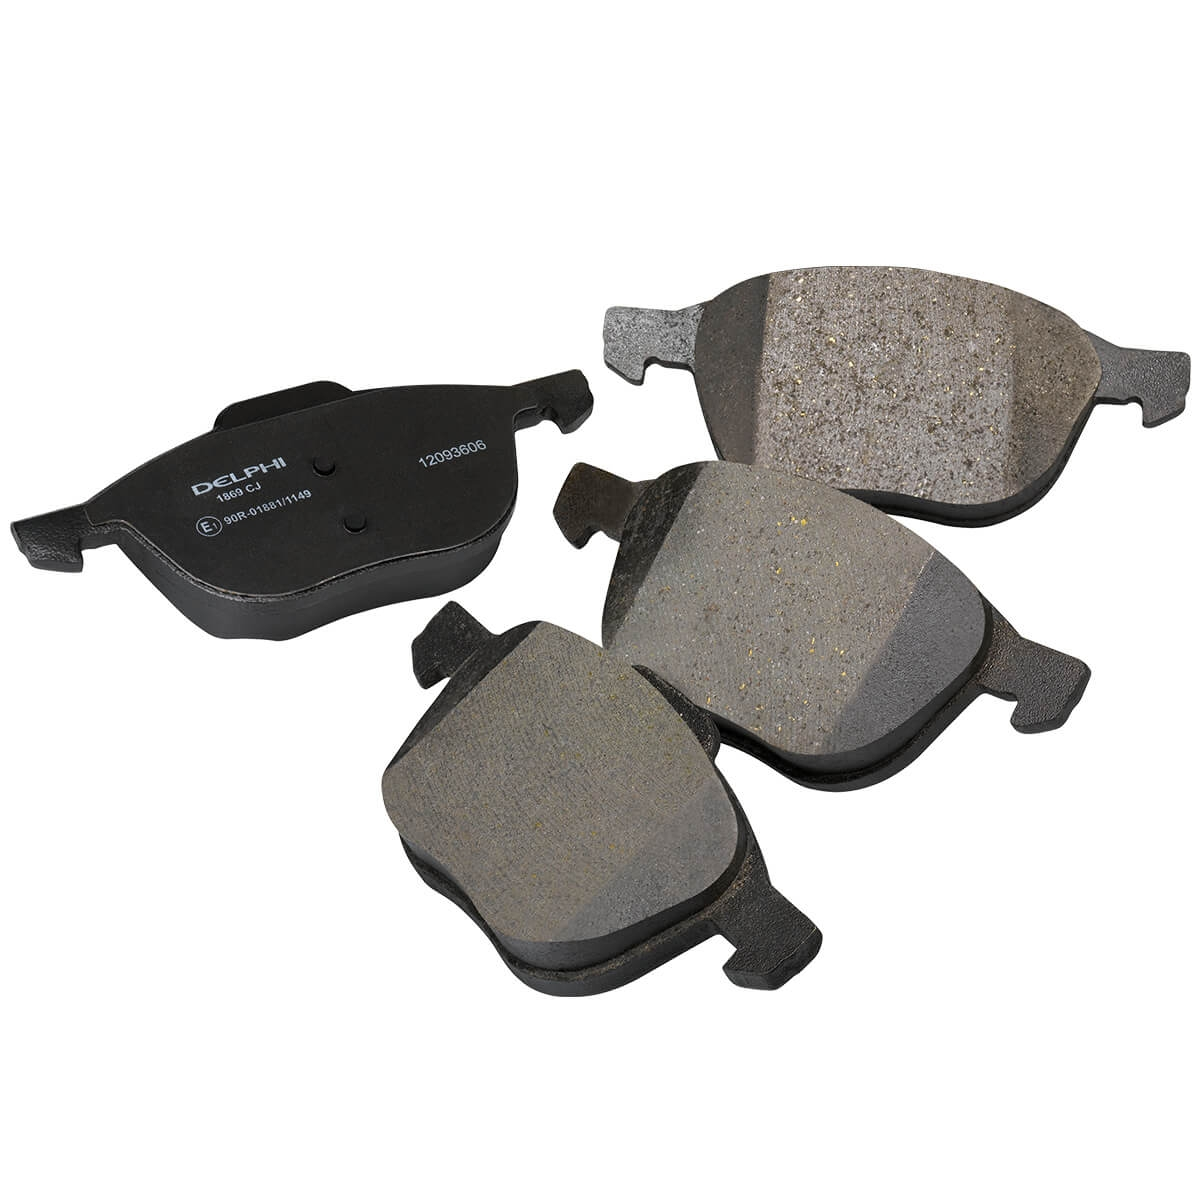 AUDI SQ5 Brake Pad Set